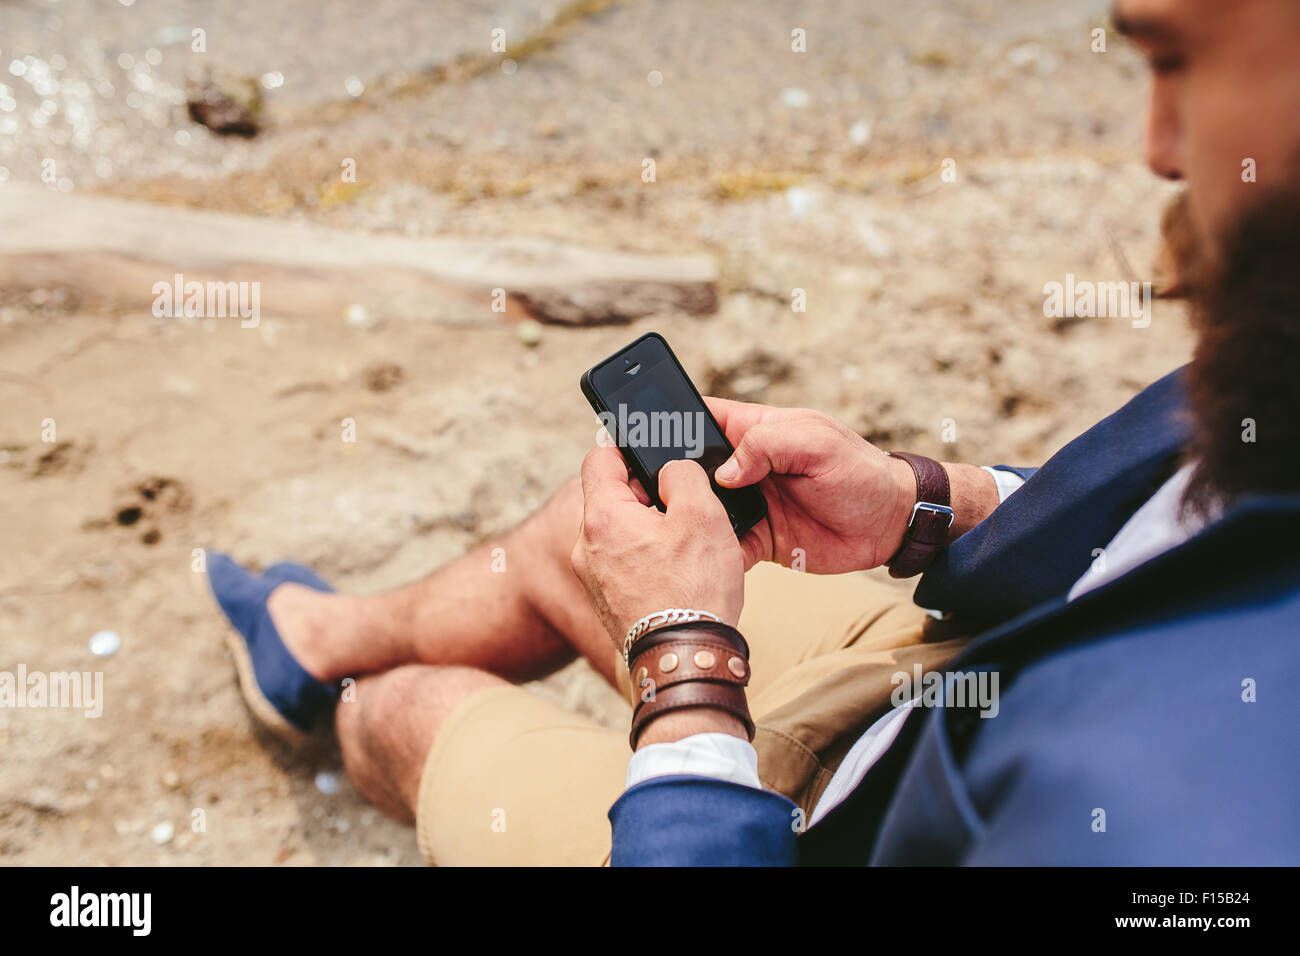 American Bearded Man using phone near the river - Stock Image